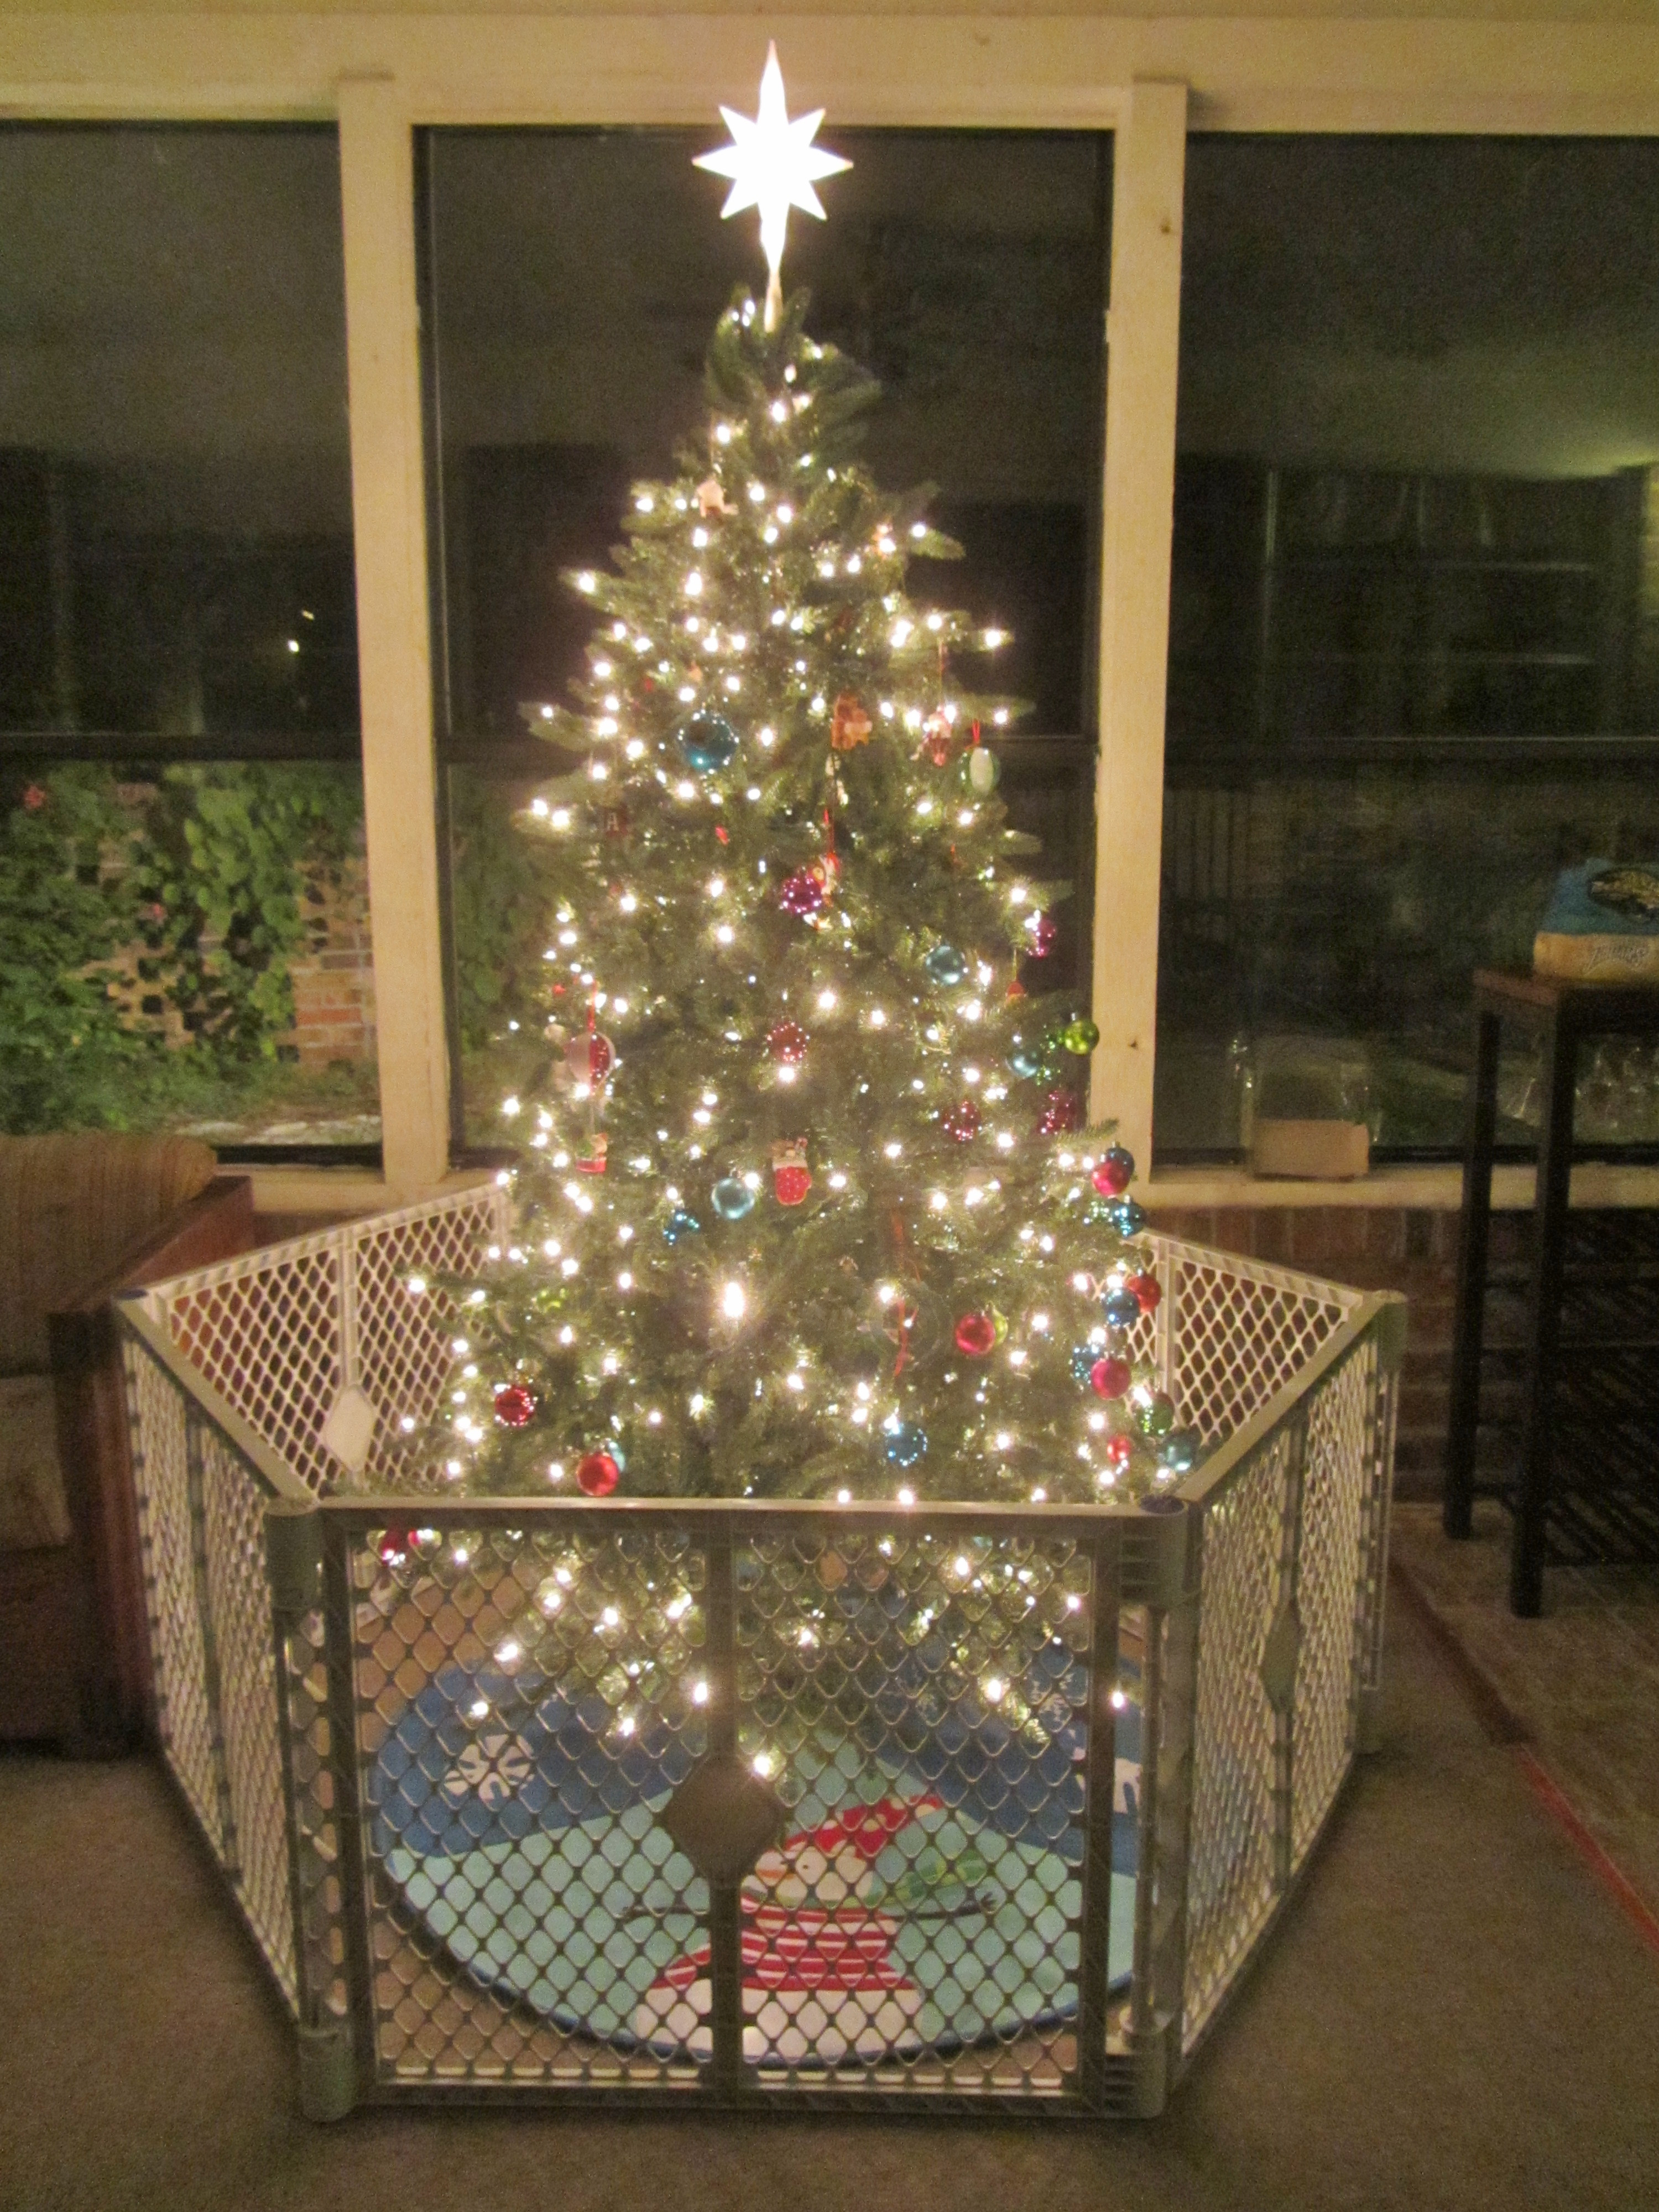 Pet Gate For Christmas Tree  Keeping a Clean and Organized Home at the Holidays